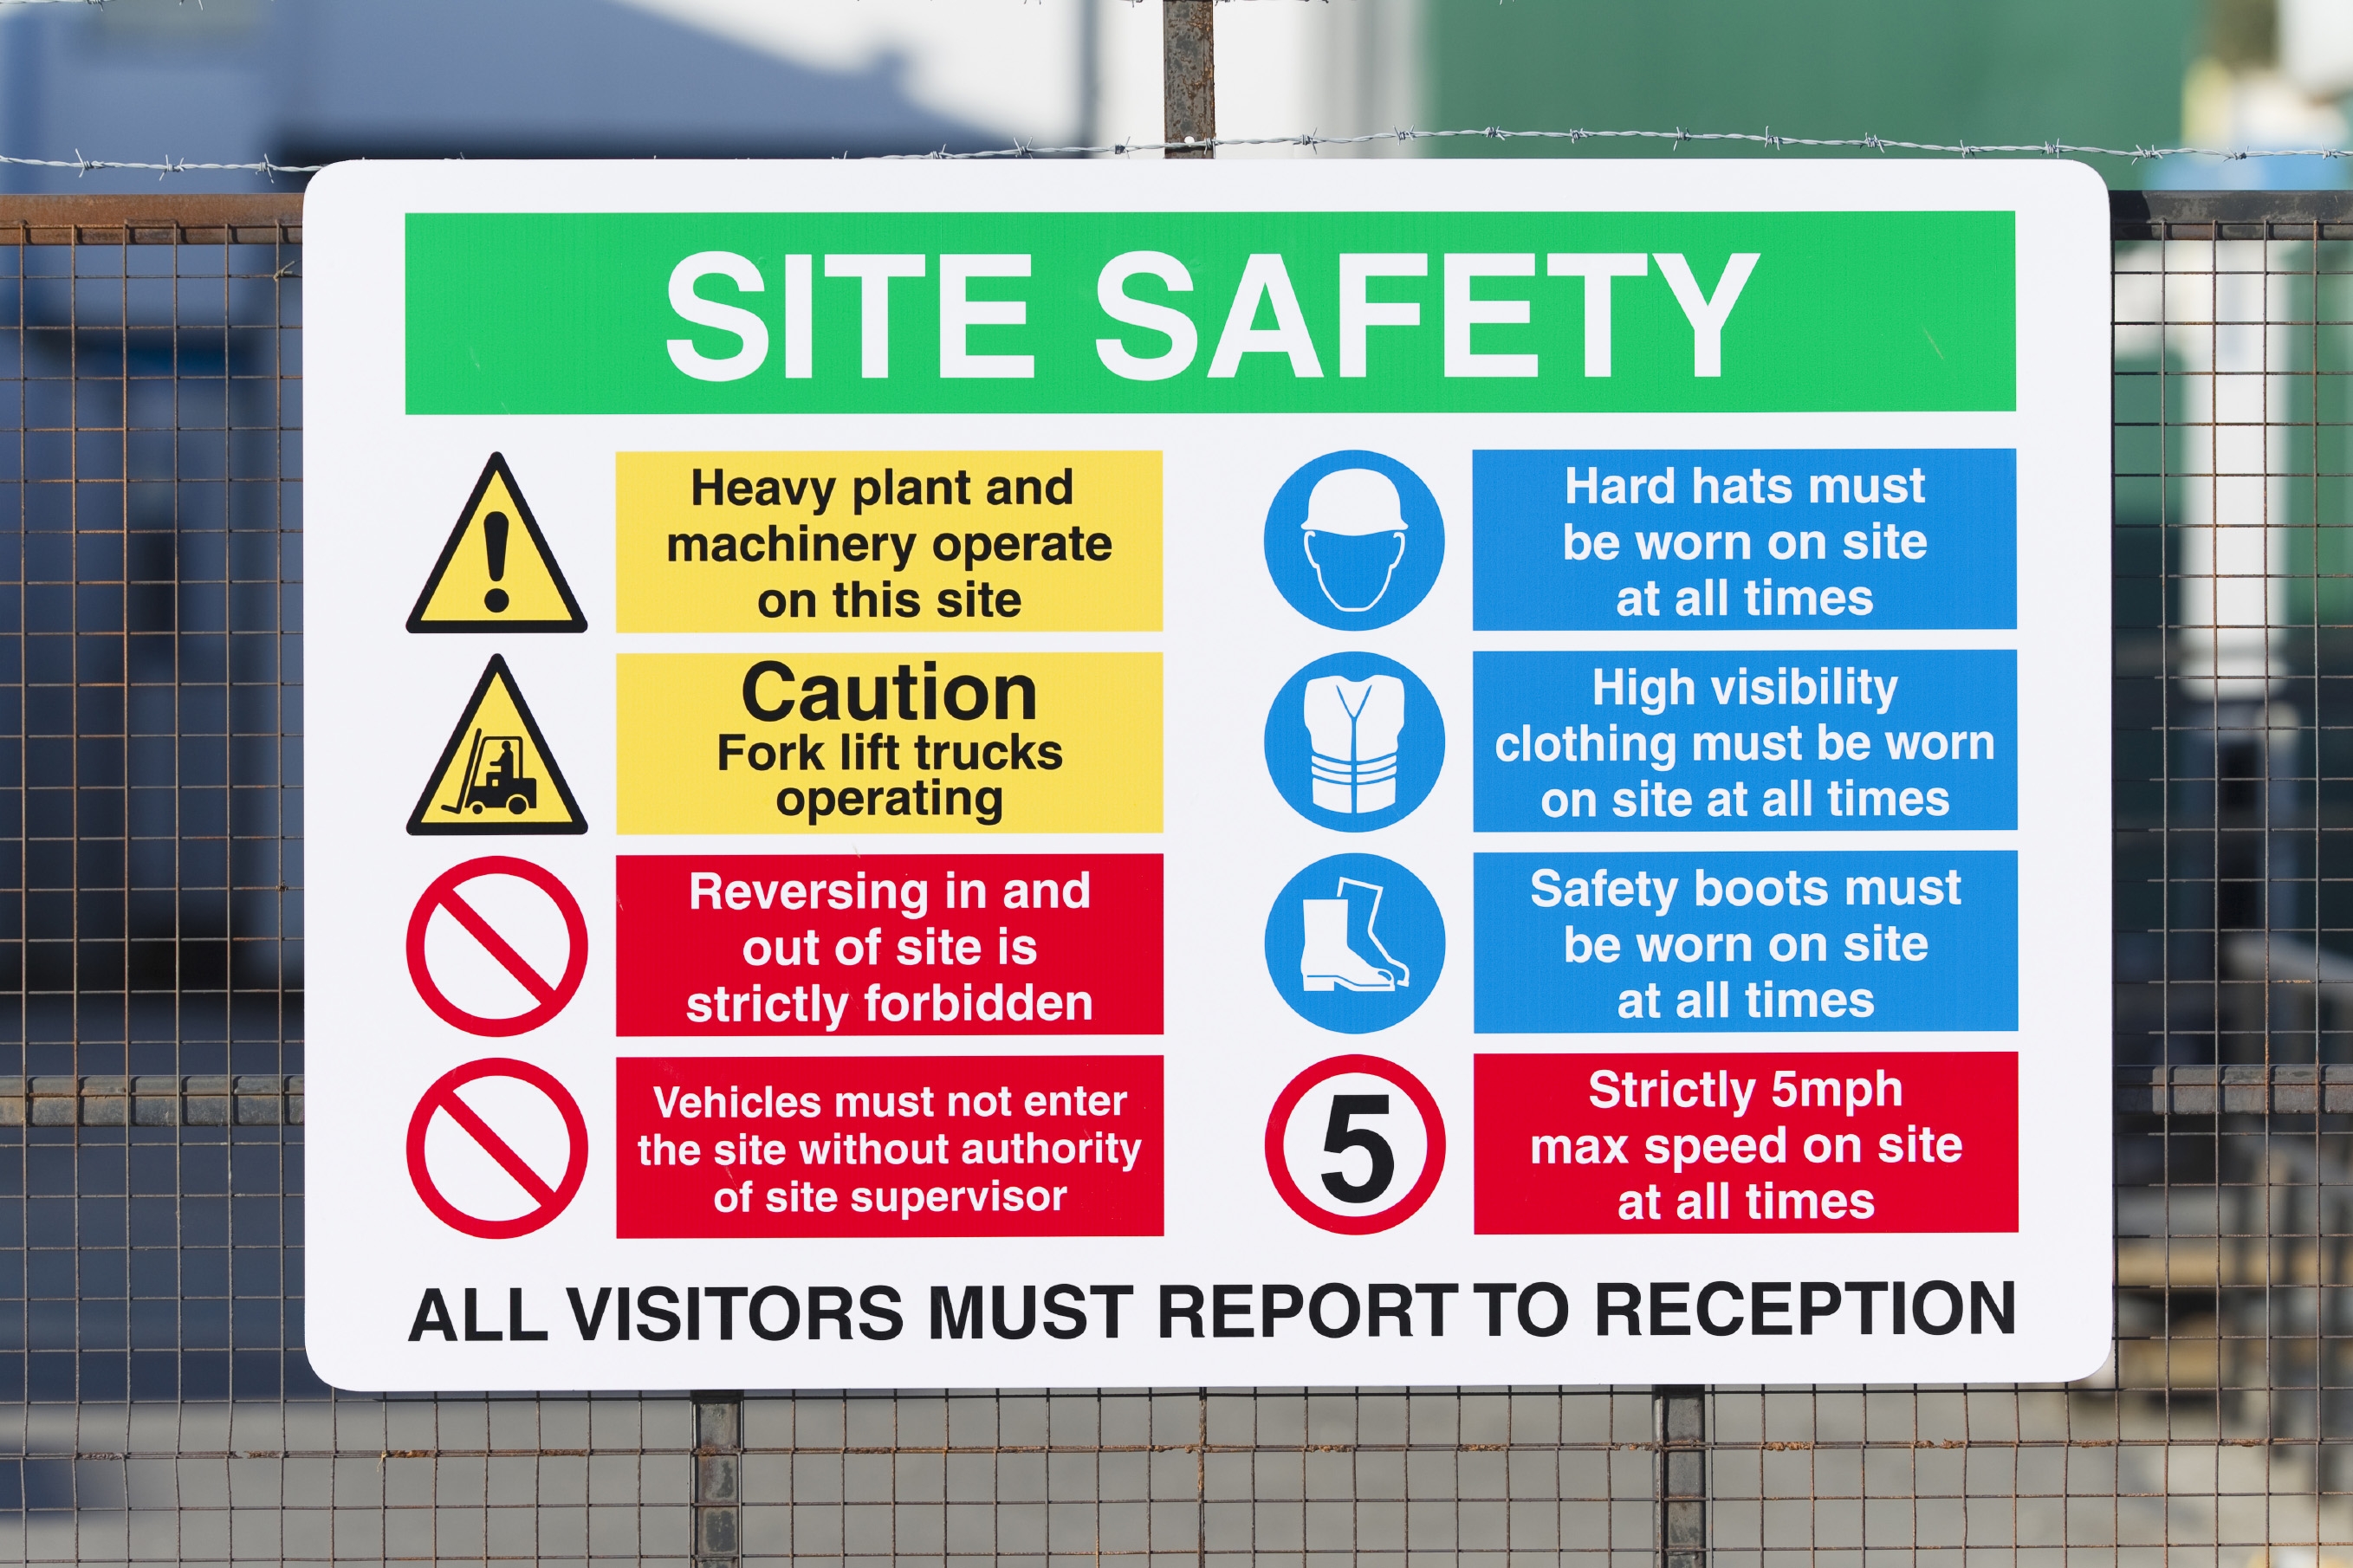 Jobsite safety: Best Practices from OSHA